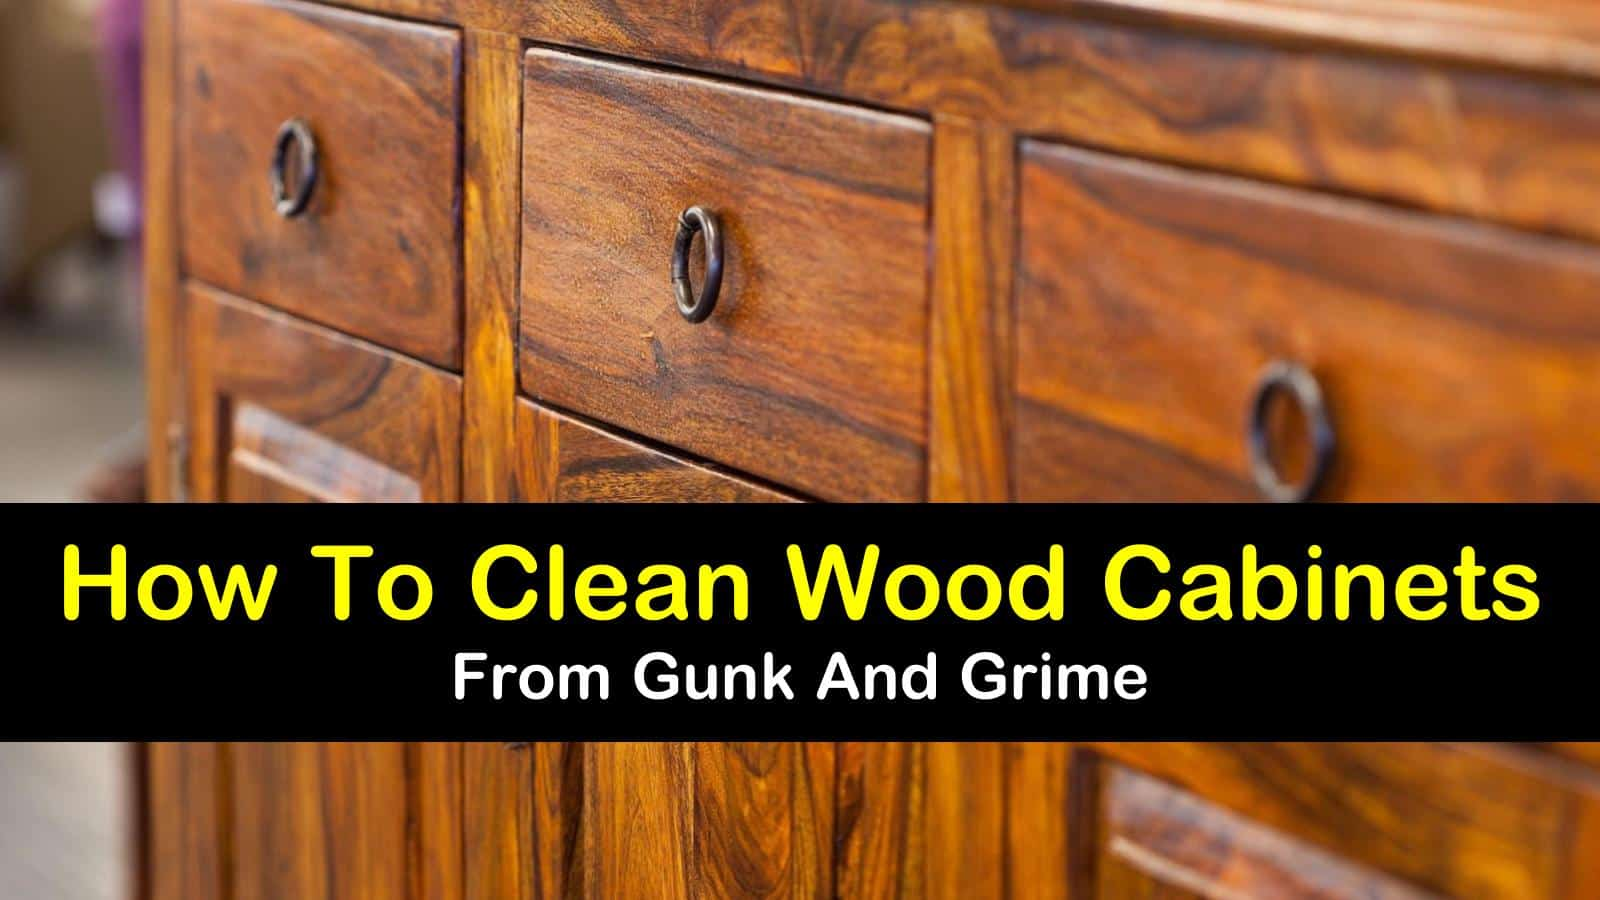 how to clean wood cabinets titleimg1